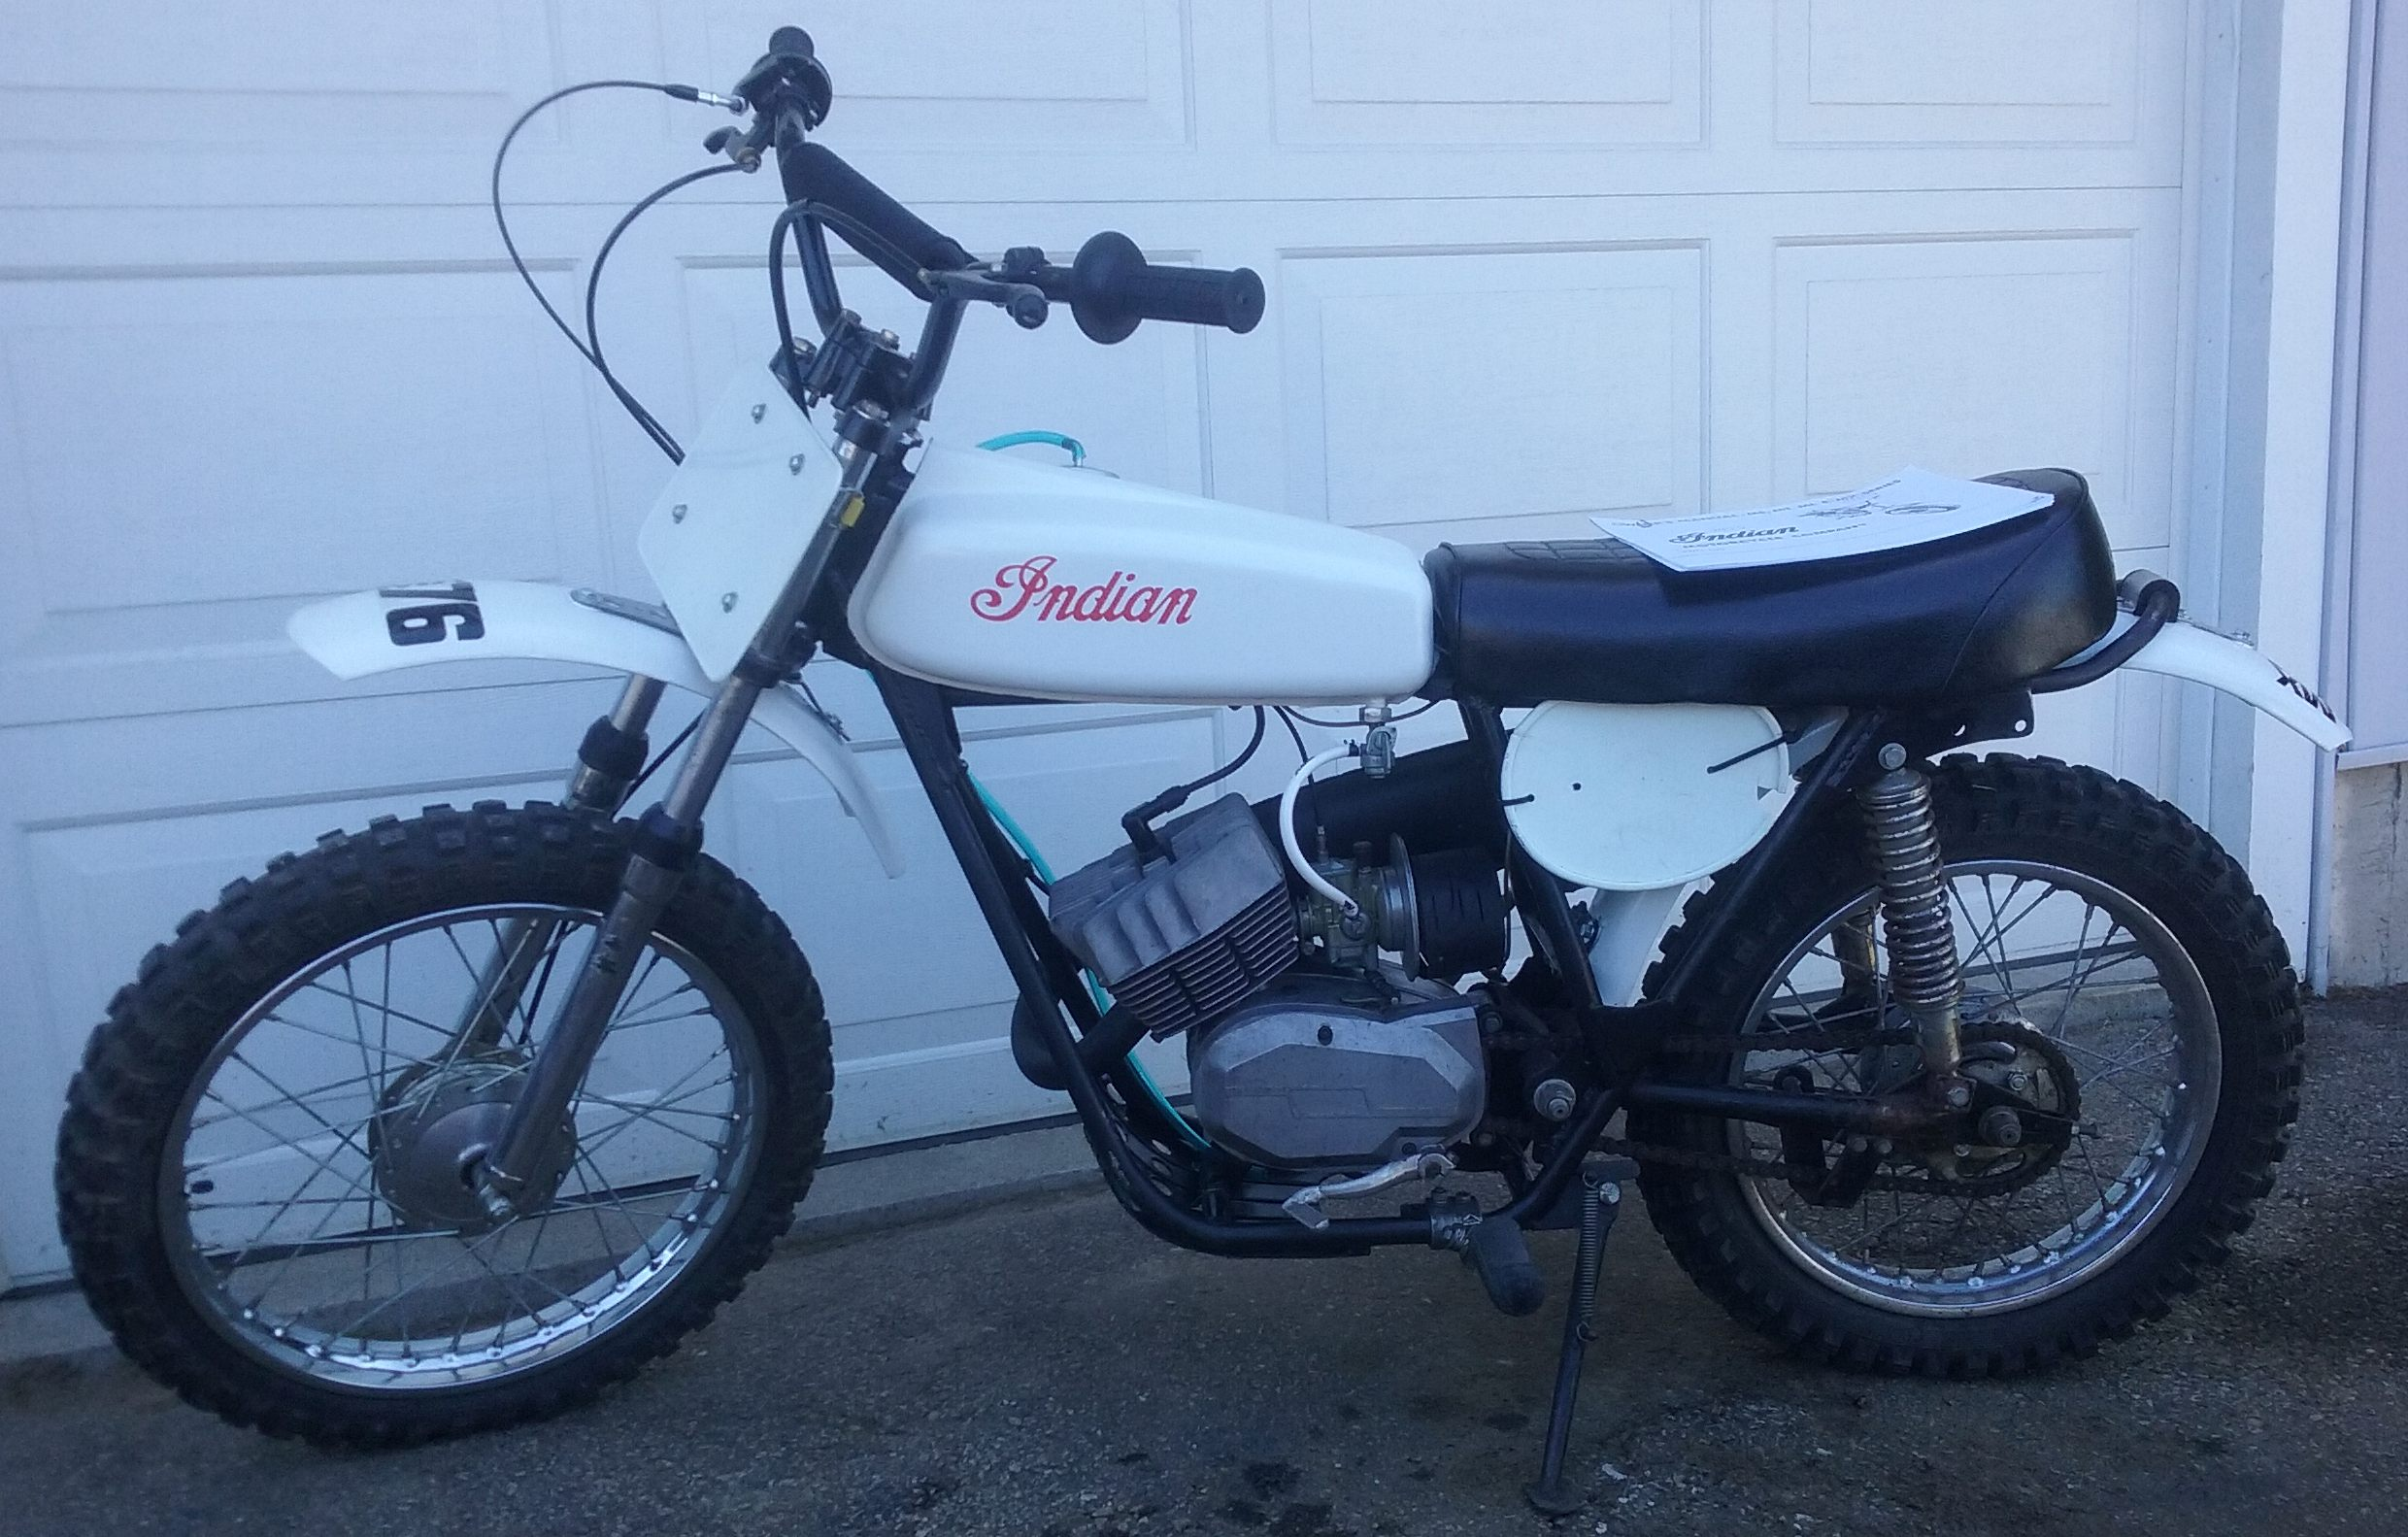 1970 Honda 125 Dirt Bike For Sale 1973 Indian Mx74 Runs Drives Nice In New 20170901 123837